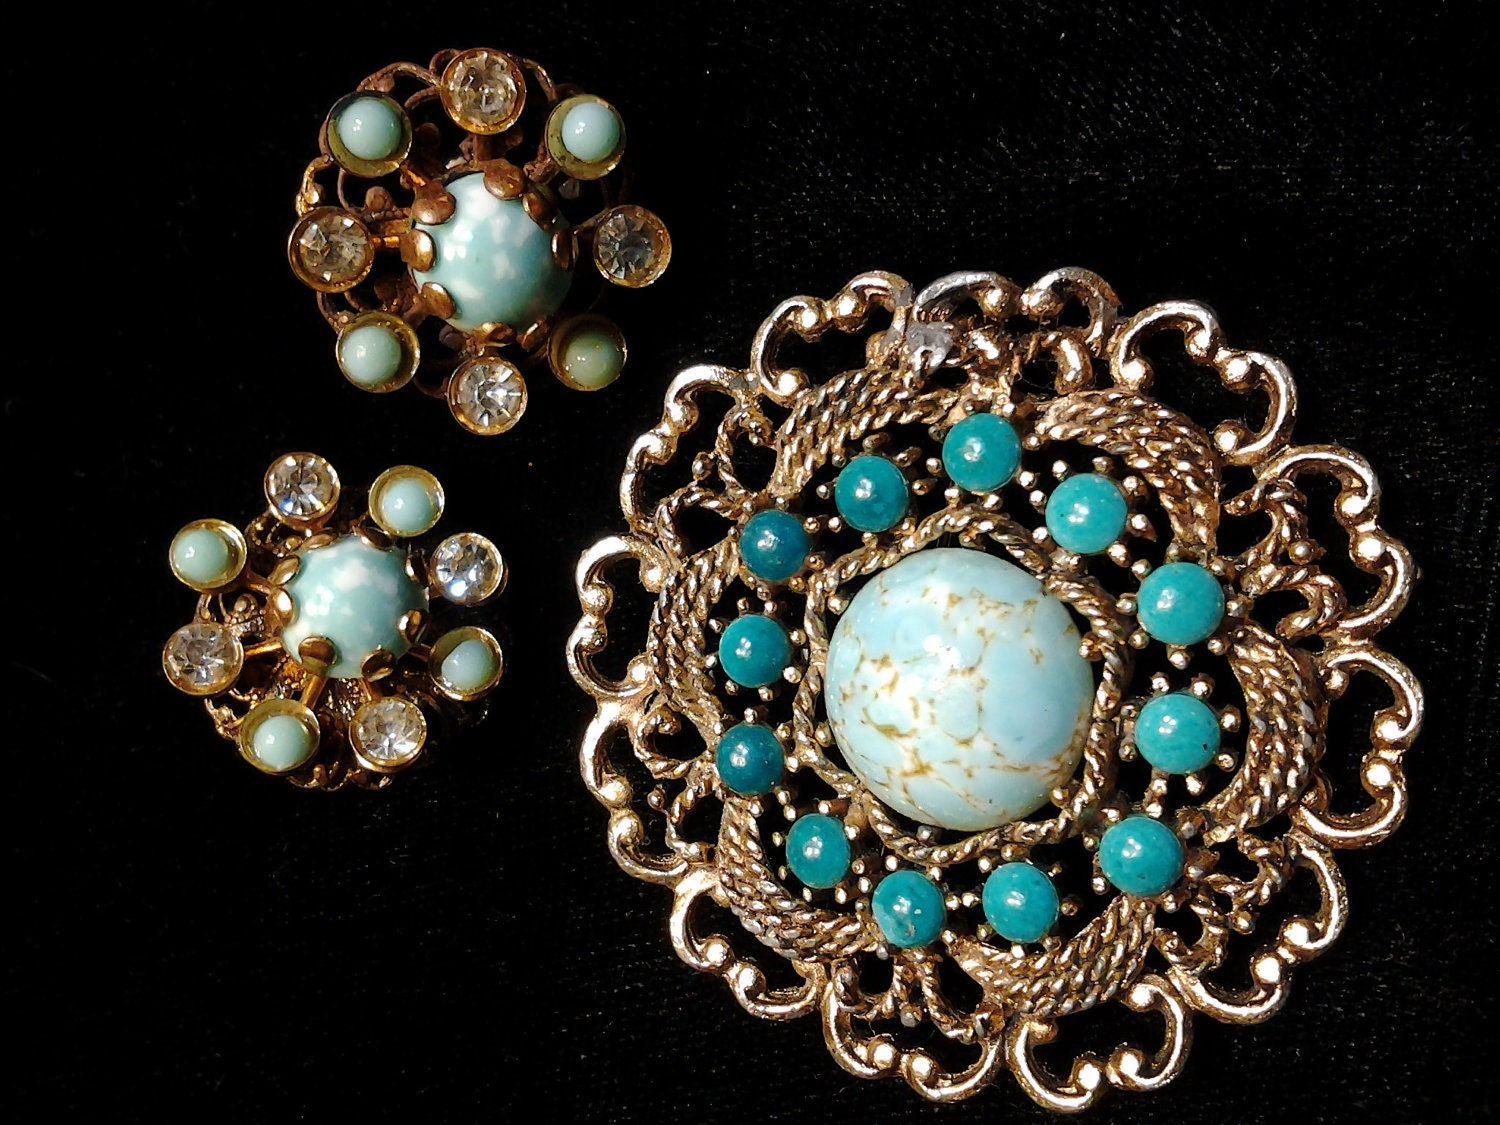 vintage antique costume jewelry brooch pin by